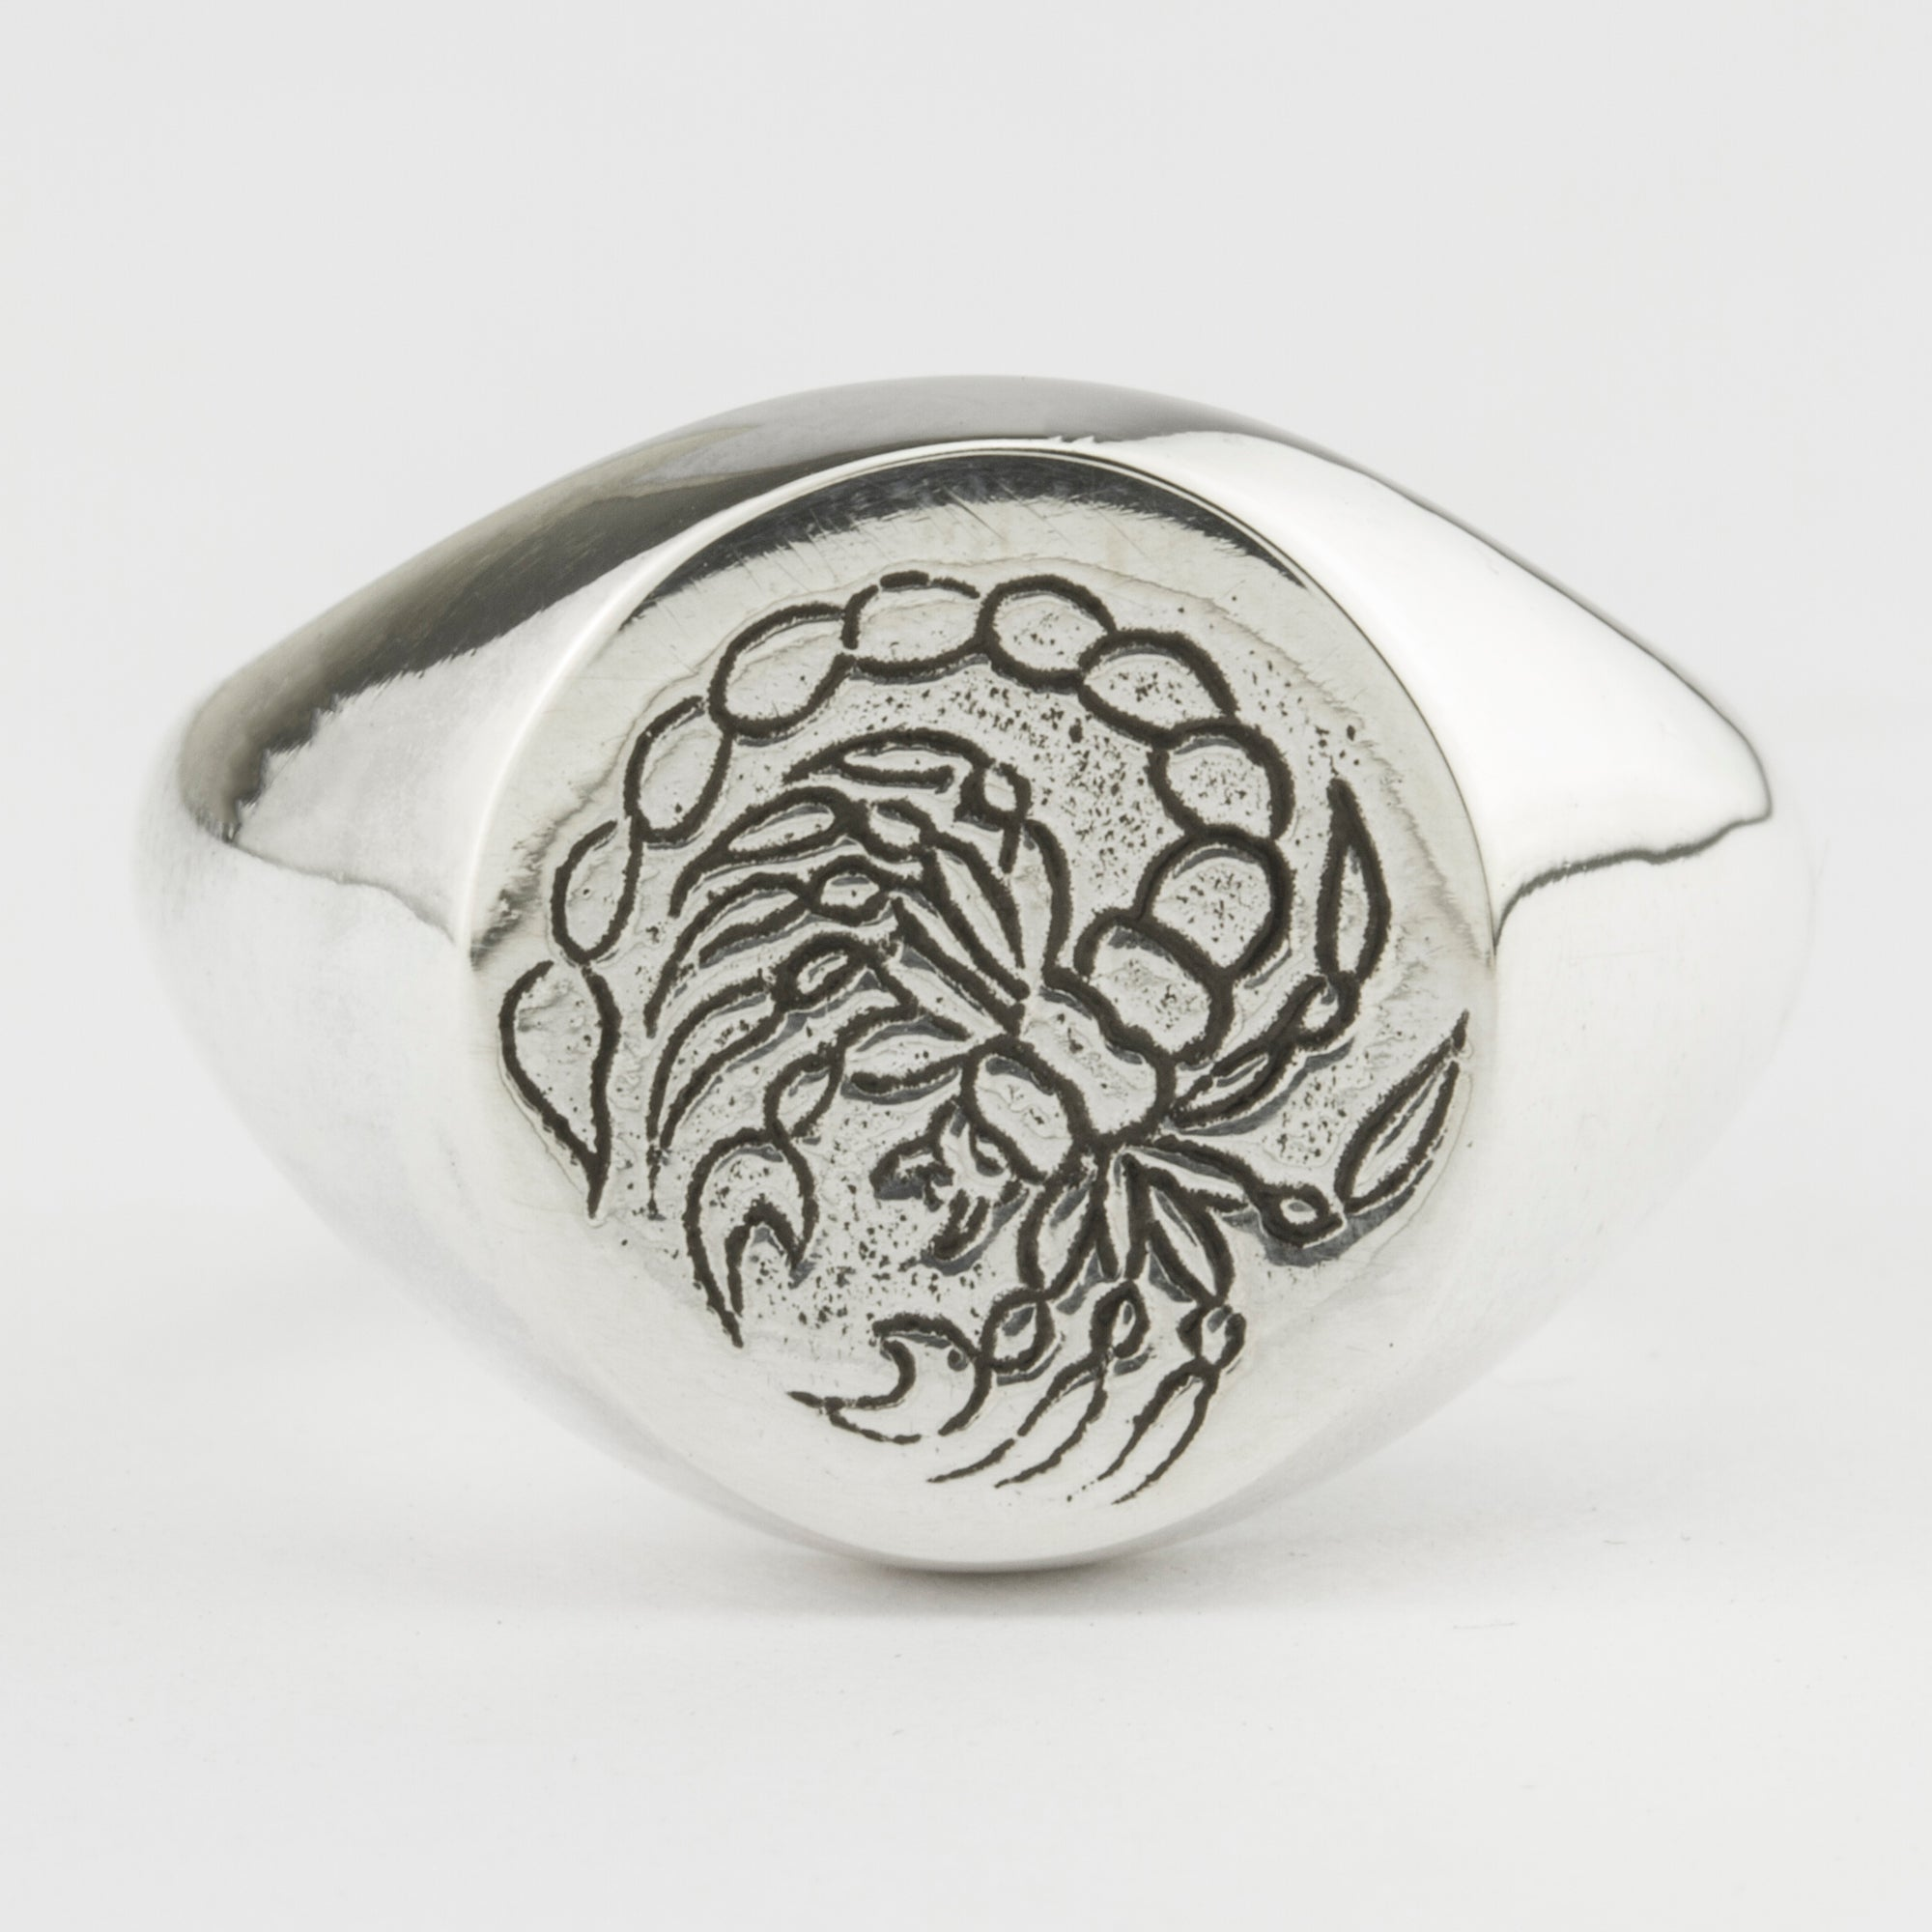 Henson x Thanks Tattoo - Scorpion Ring Silver